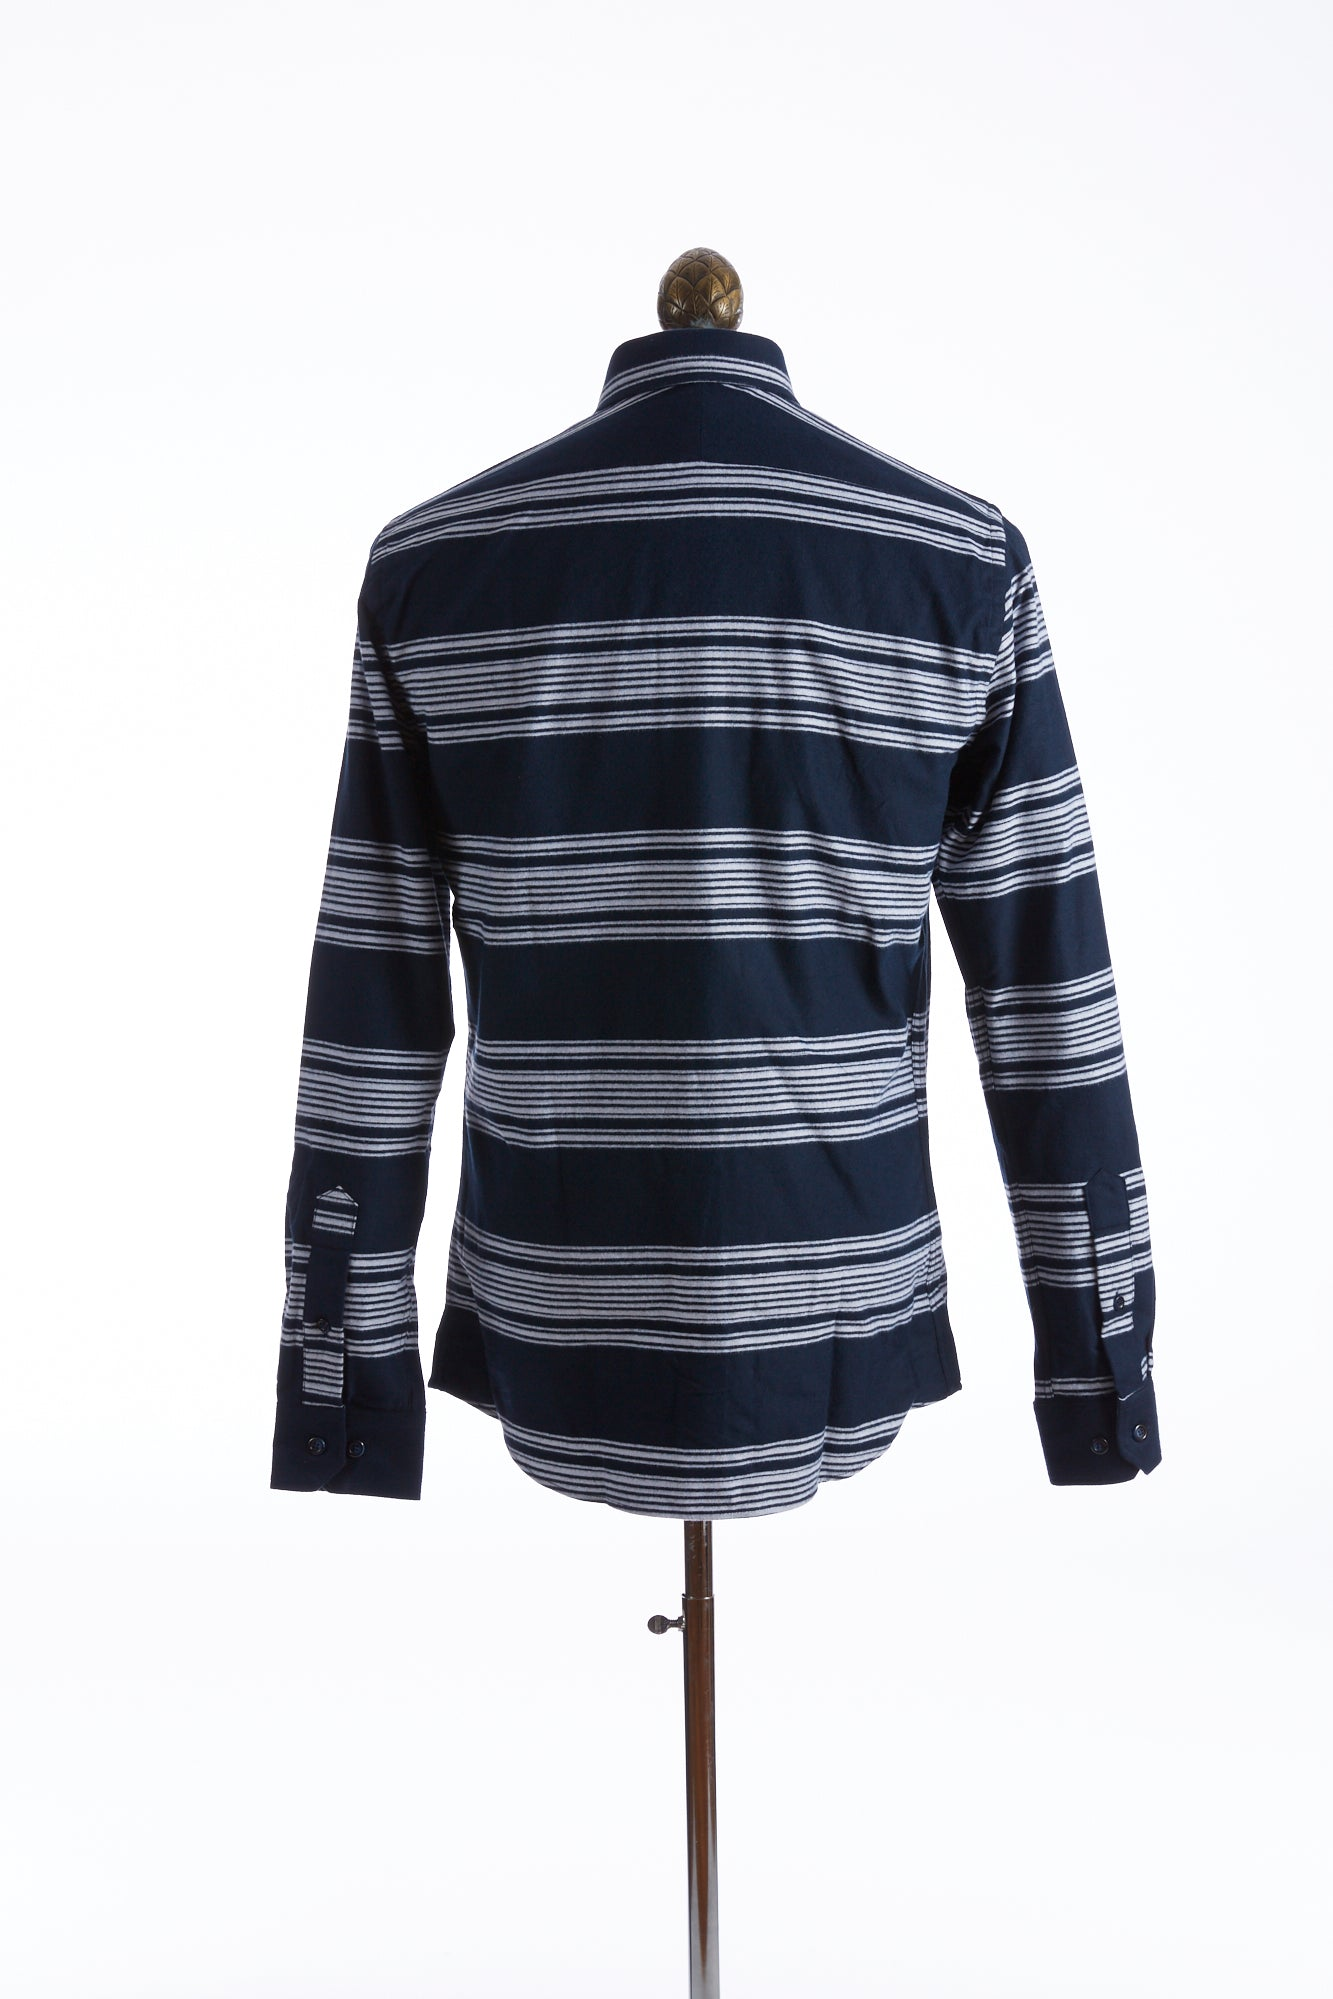 Blazer for Men Navy-White Striped Flannel Shirt